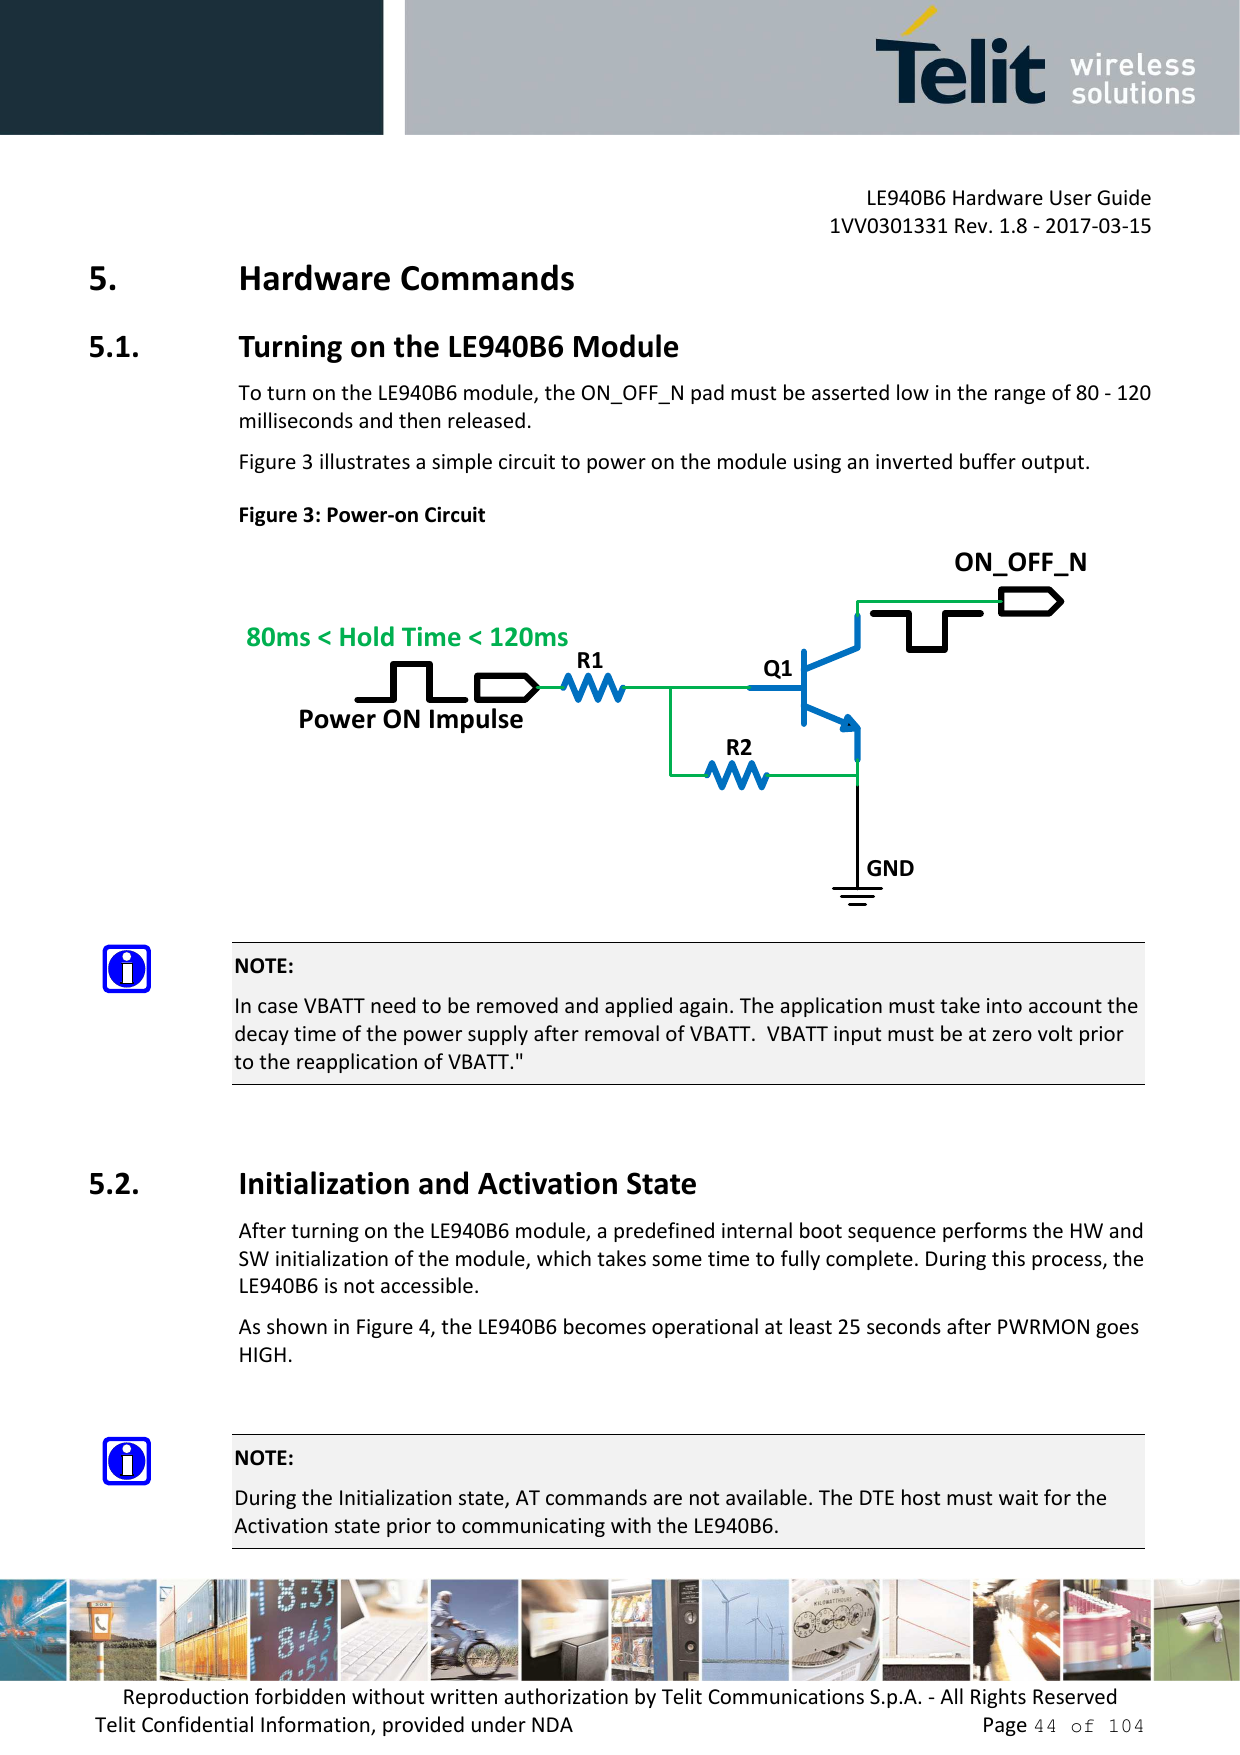 """LE940B6 Hardware User Guide     1VV0301331 Rev. 1.8 - 2017-03-15 Reproduction forbidden without written authorization by Telit Communications S.p.A. - All Rights Reserved Telit Confidential Information, provided under NDA                 Page 44 of 104 5. Hardware Commands 5.1. Turning on the LE940B6 Module To turn on the LE940B6 module, the ON_OFF_N pad must be asserted low in the range of 80 - 120 milliseconds and then released. Figure 3 illustrates a simple circuit to power on the module using an inverted buffer output. Figure 3: Power-on Circuit GNDR1R2Q1Power ON Impulse80ms < Hold Time < 120msON_OFF_N  NOTE: In case VBATT need to be removed and applied again. The application must take into account the decay time of the power supply after removal of VBATT.  VBATT input must be at zero volt prior to the reapplication of VBATT.""""  5.2. Initialization and Activation State After turning on the LE940B6 module, a predefined internal boot sequence performs the HW and SW initialization of the module, which takes some time to fully complete. During this process, the LE940B6 is not accessible. As shown in Figure 4, the LE940B6 becomes operational at least 25 seconds after PWRMON goes HIGH.    NOTE: During the Initialization state, AT commands are not available. The DTE host must wait for the Activation state prior to communicating with the LE940B6."""